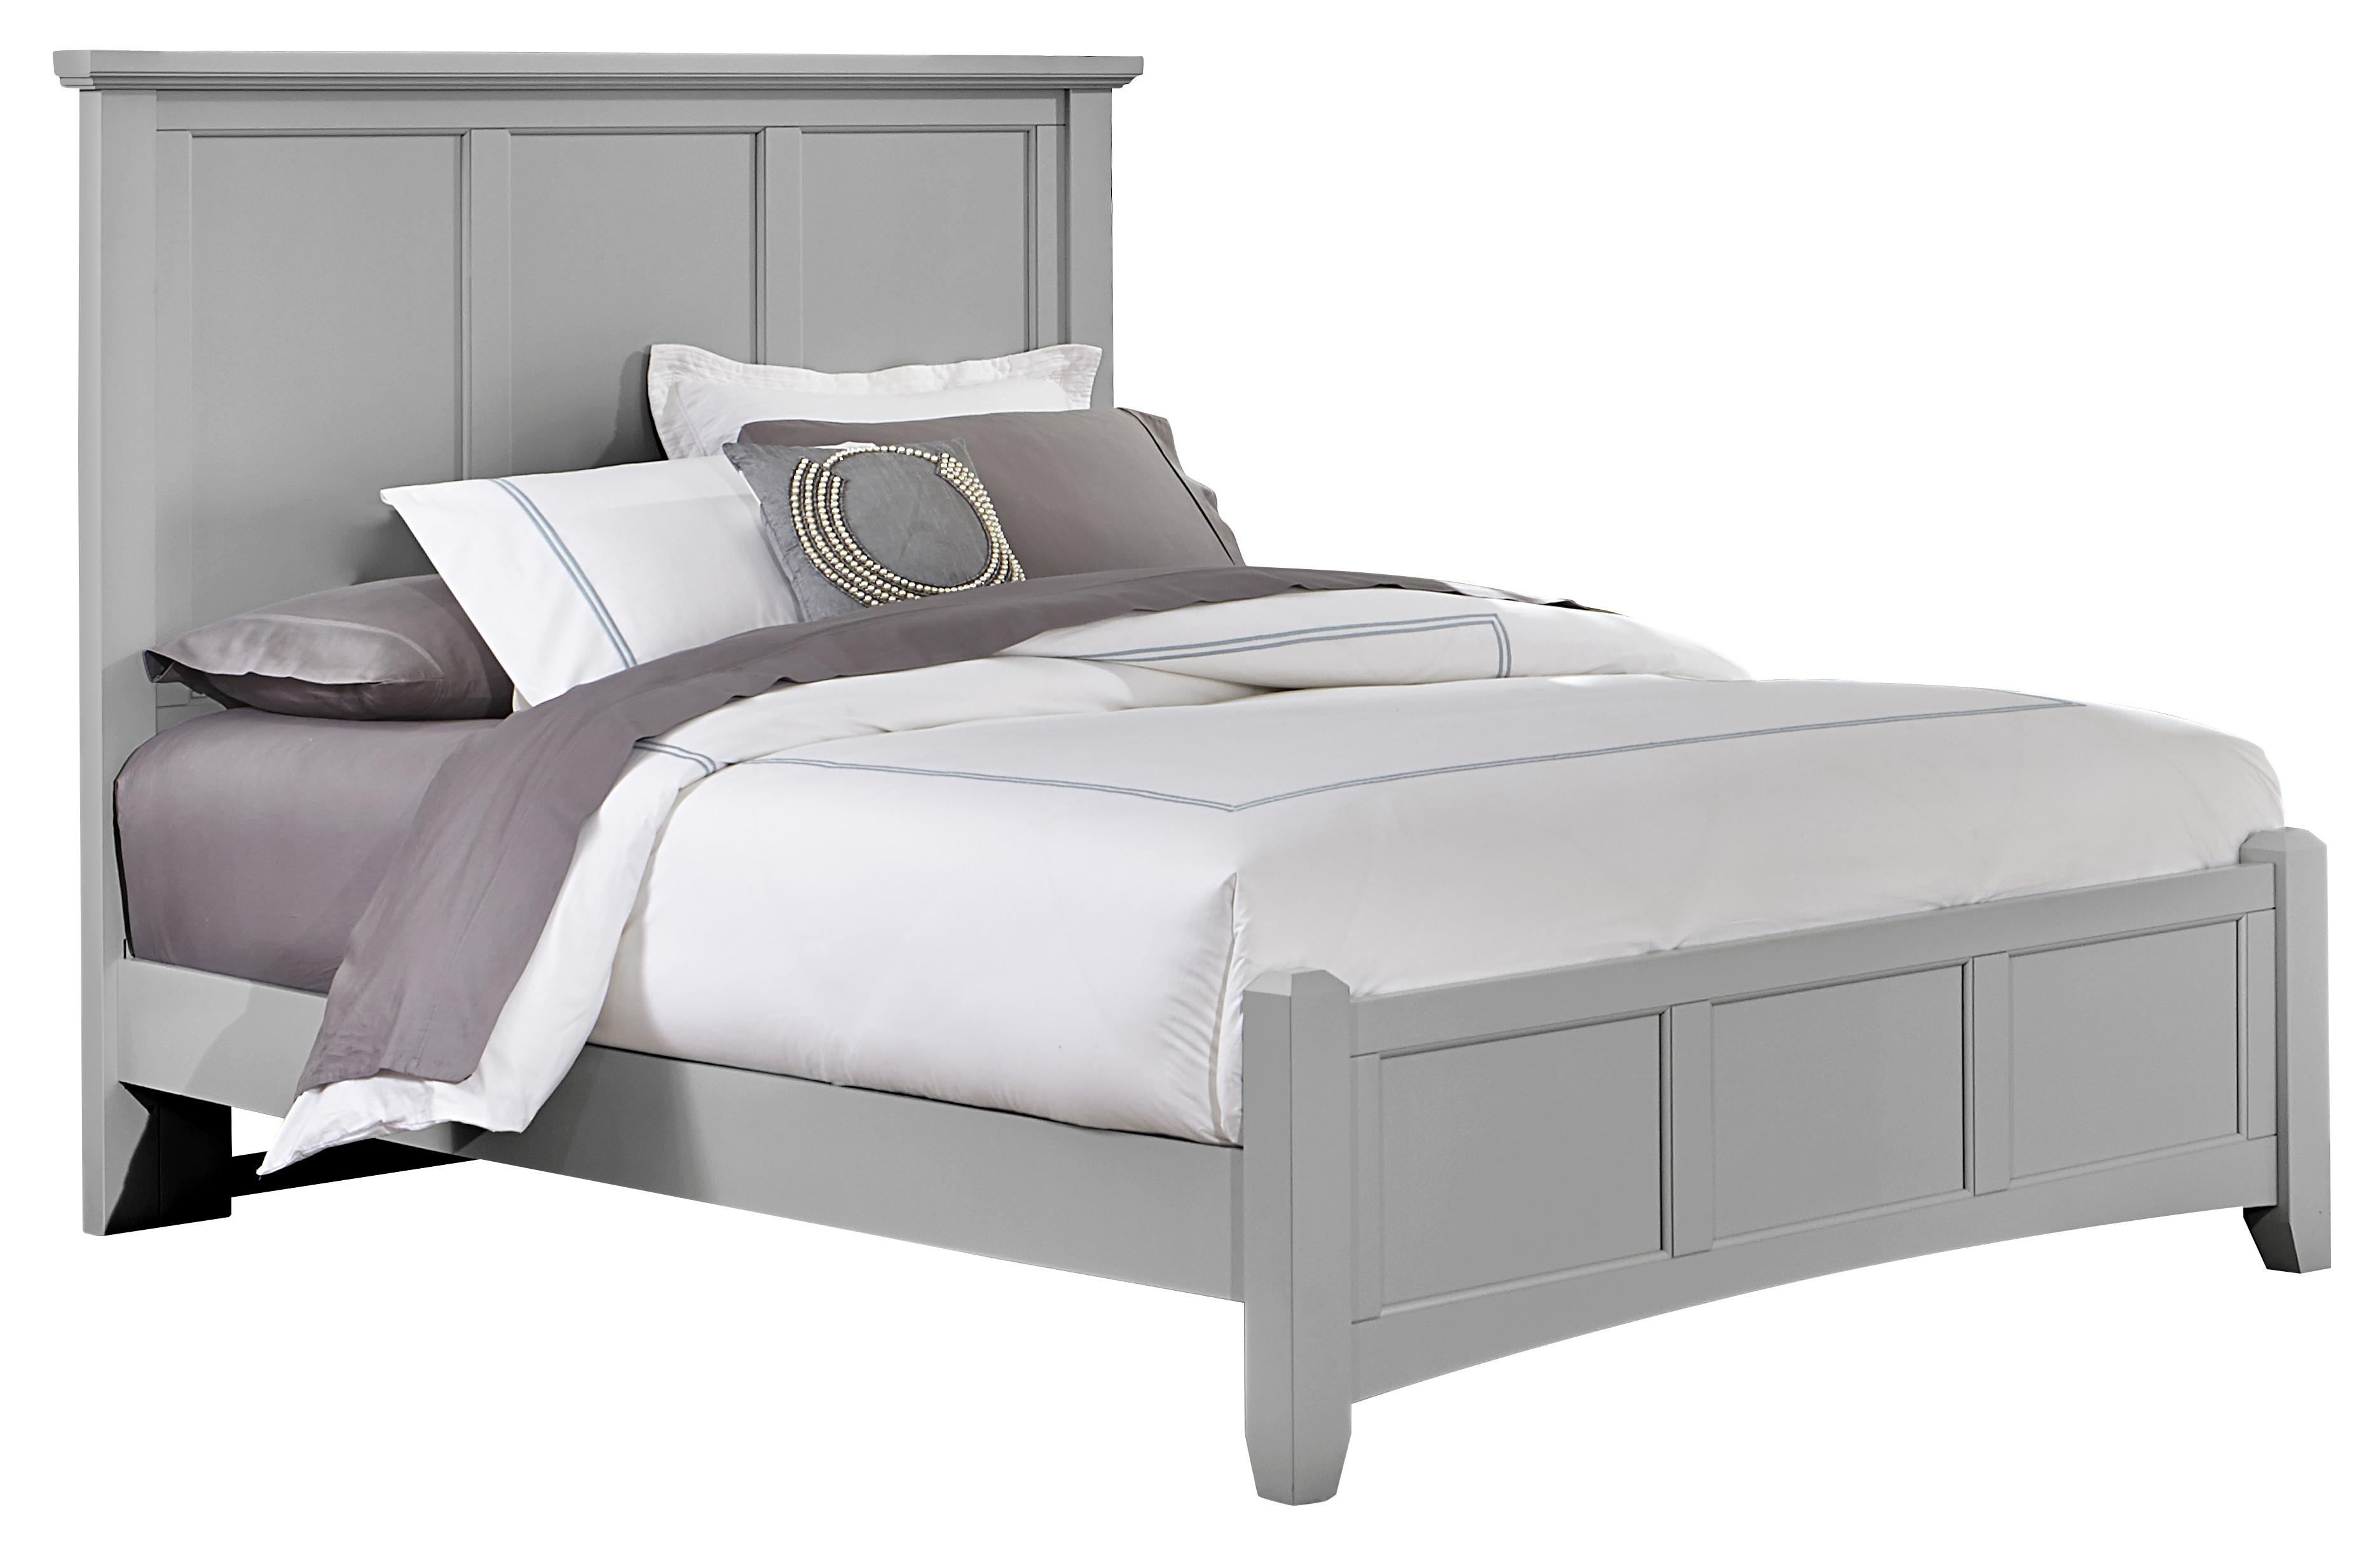 vaughan bassett bonanza california king mansion bed with low profile footboard olinde 39 s. Black Bedroom Furniture Sets. Home Design Ideas